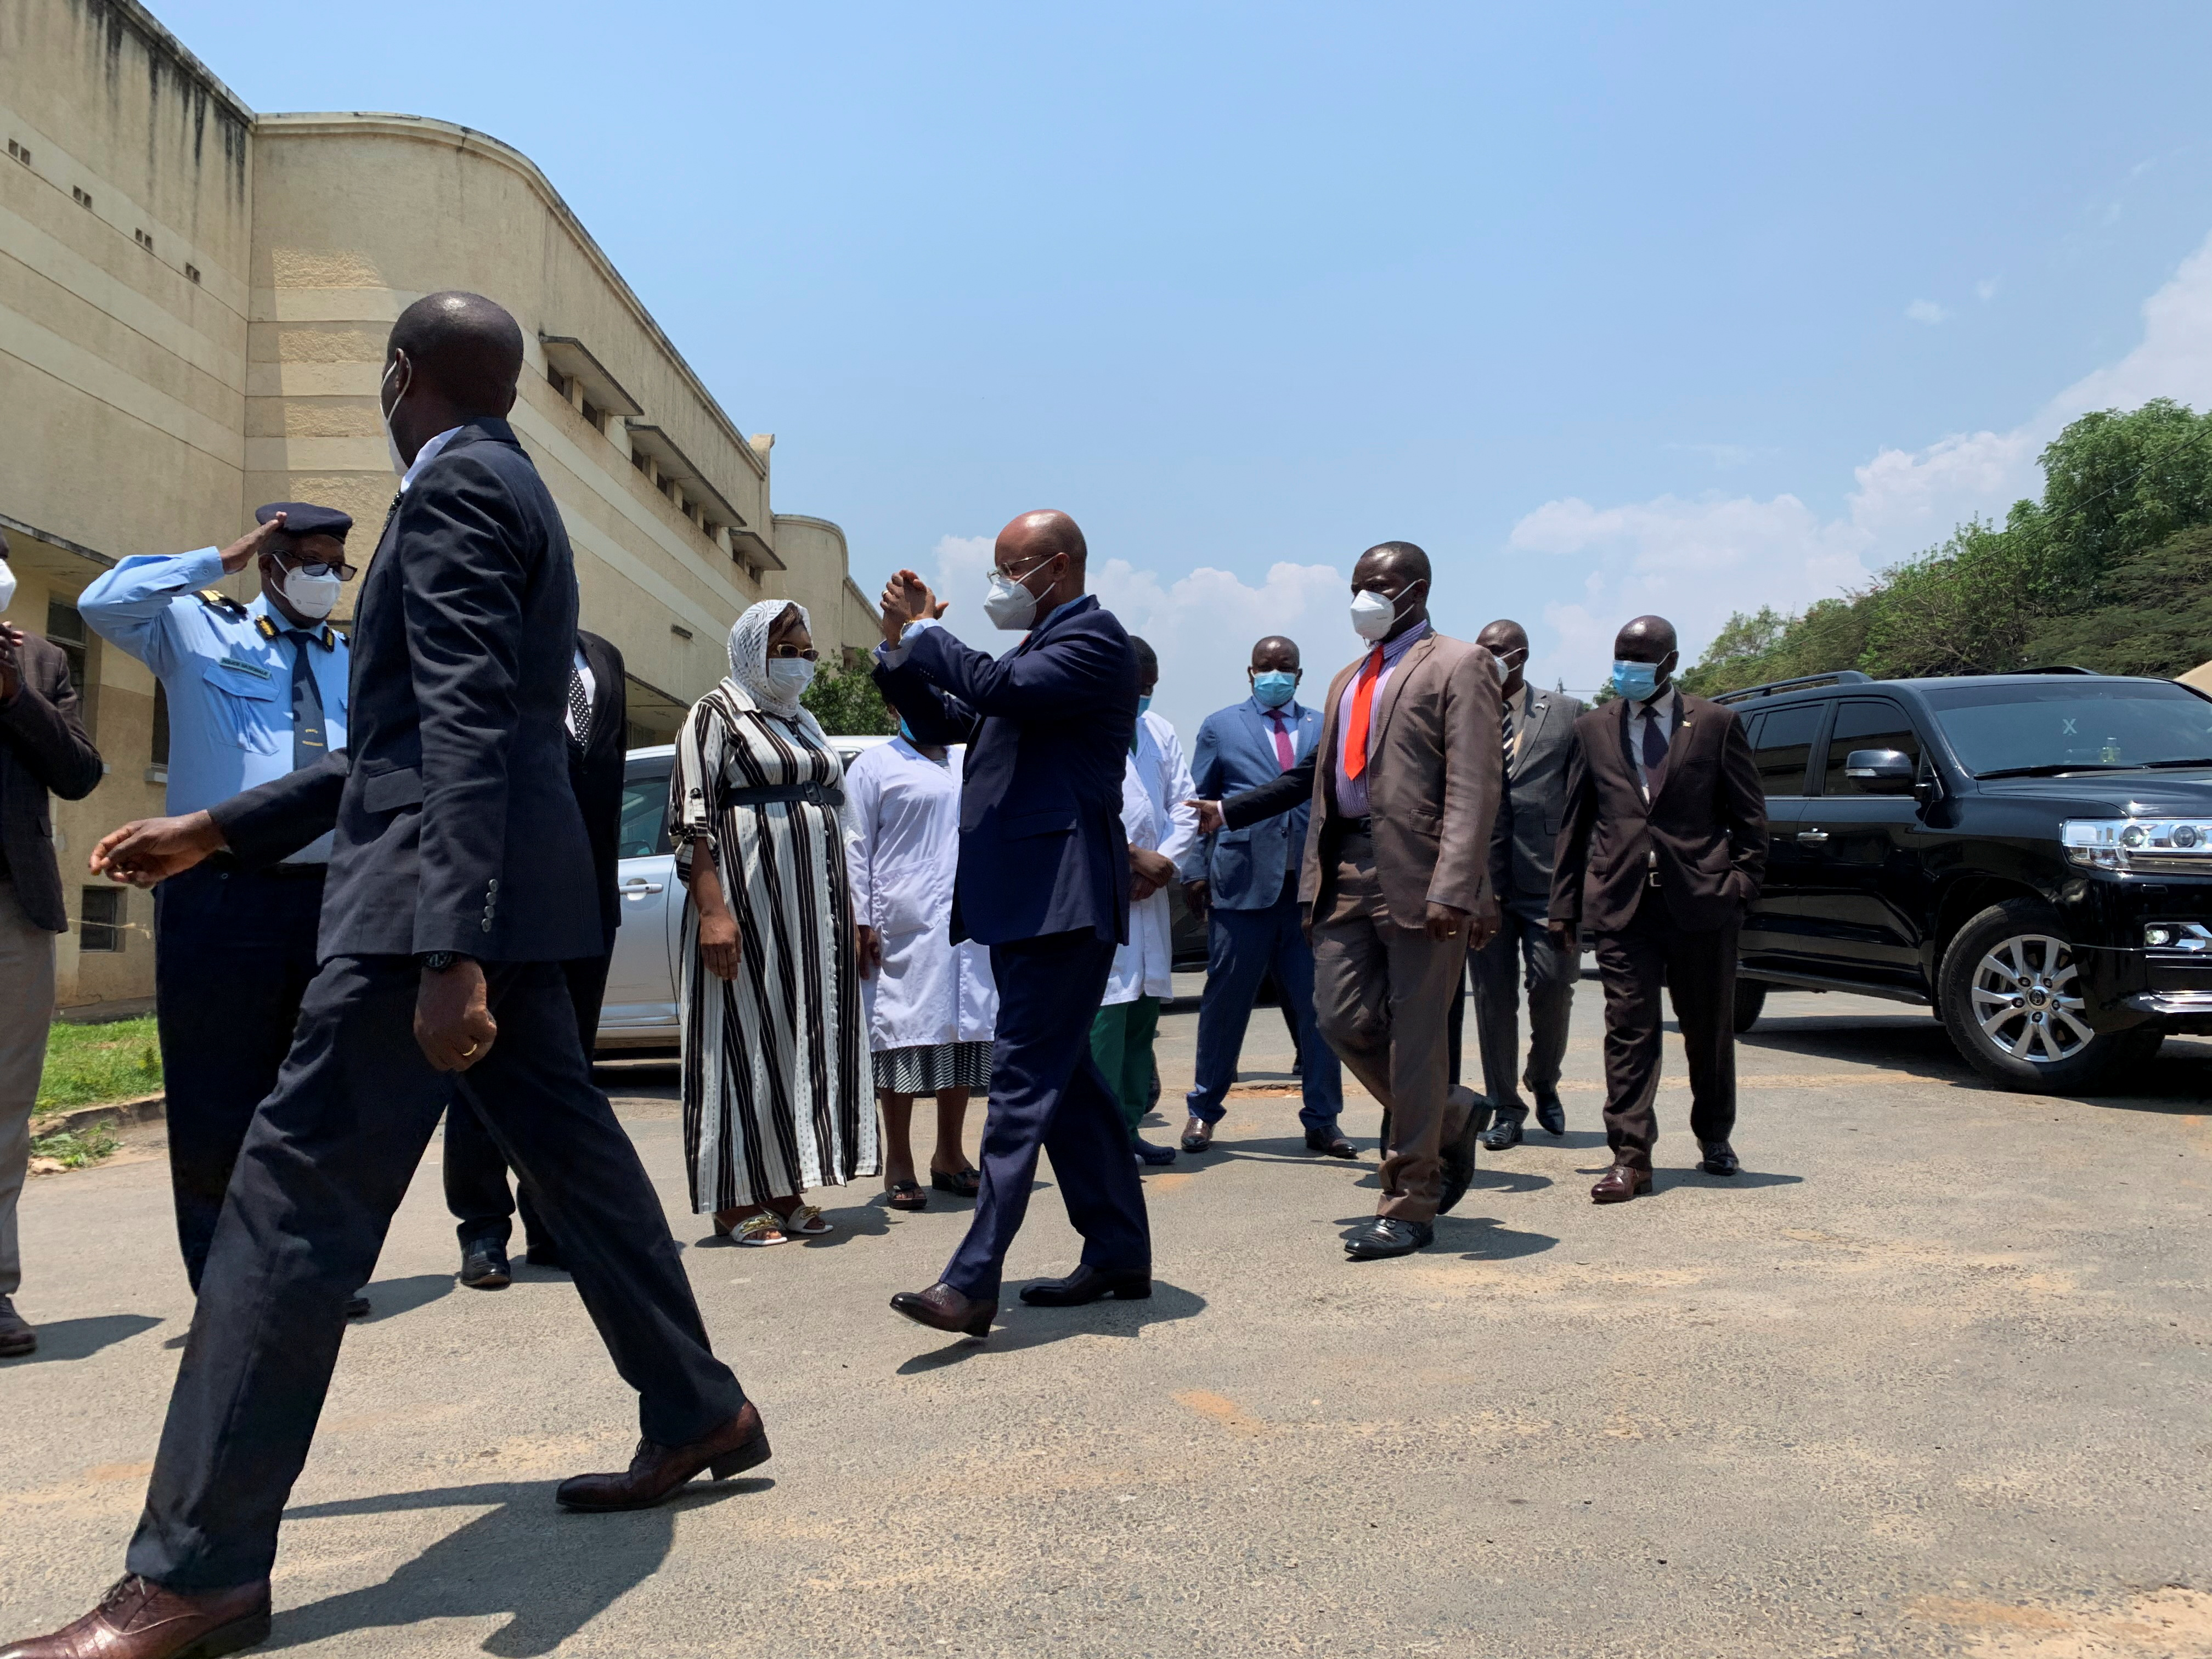 Burundi's Prime Minister Alain-Guillaume Bunyoni gestures as he arrives at the Prince Regent Charles Hospital to visit the victims of an explosion that killed at least five people and injured 50, in Bujumbura, Burundi September 21, 2021. REUTERS/Guy Senga